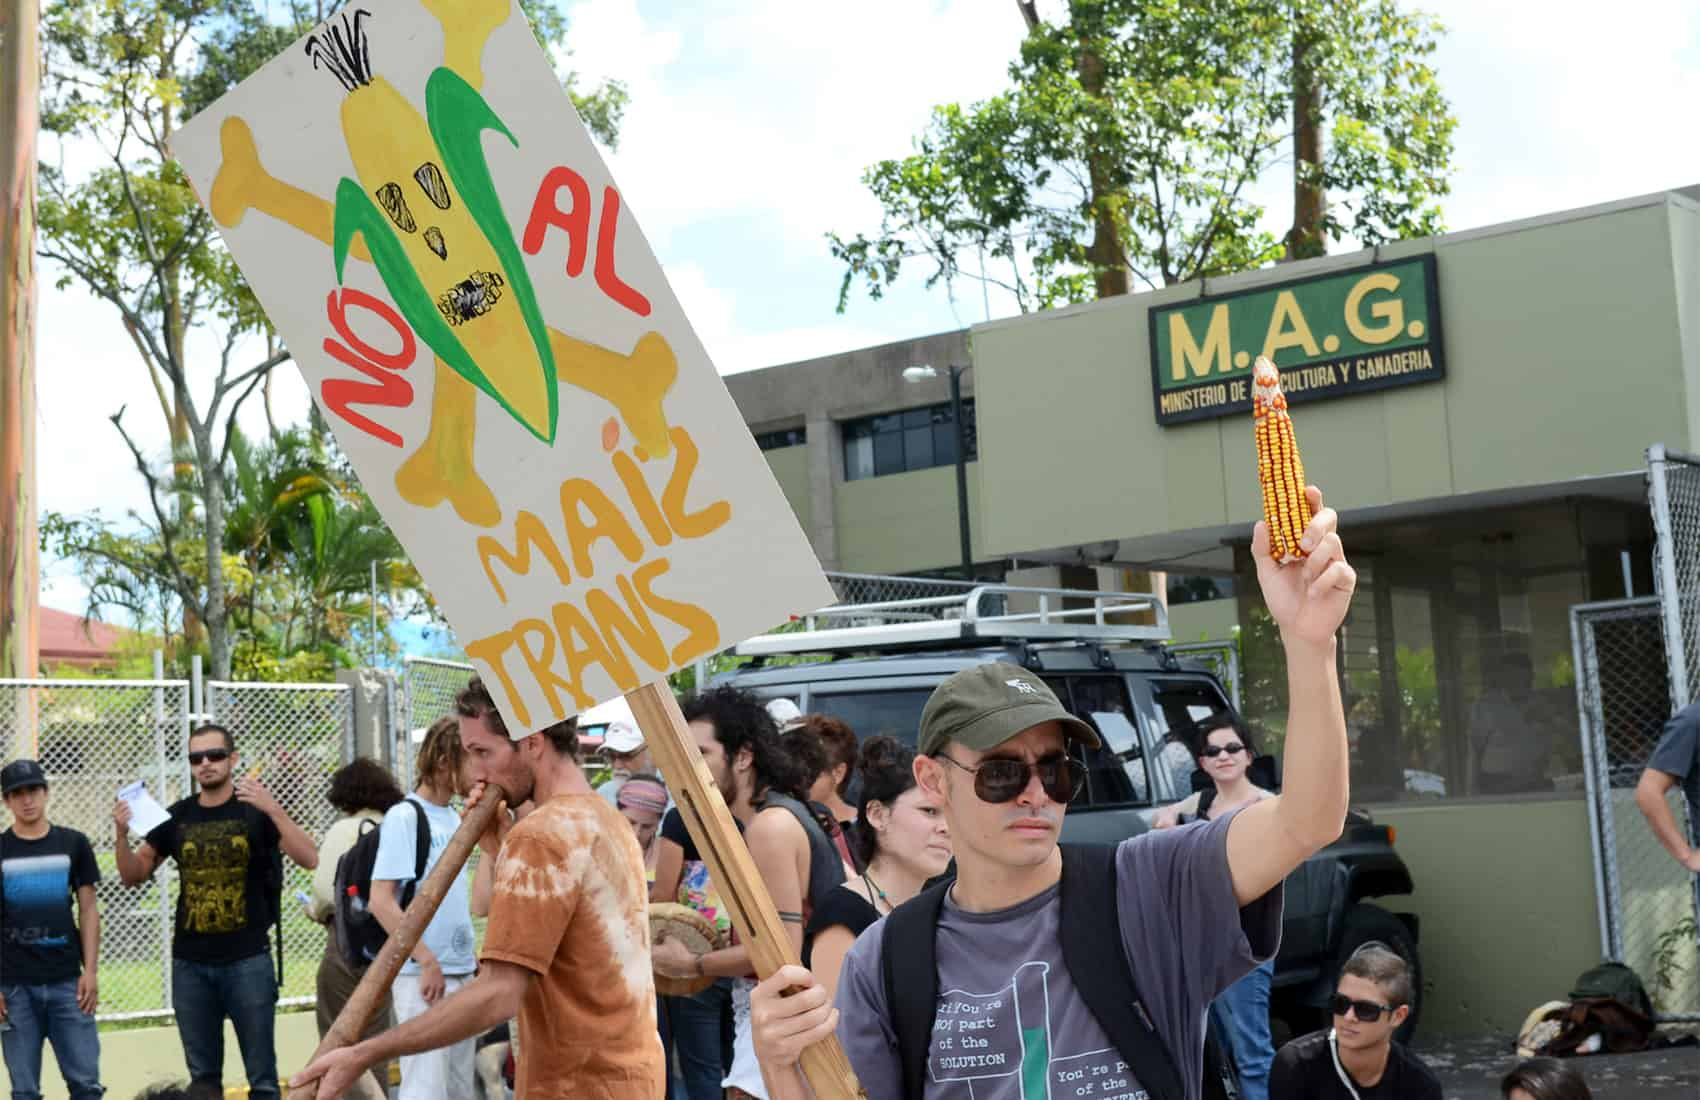 Anti-GMO demonstration